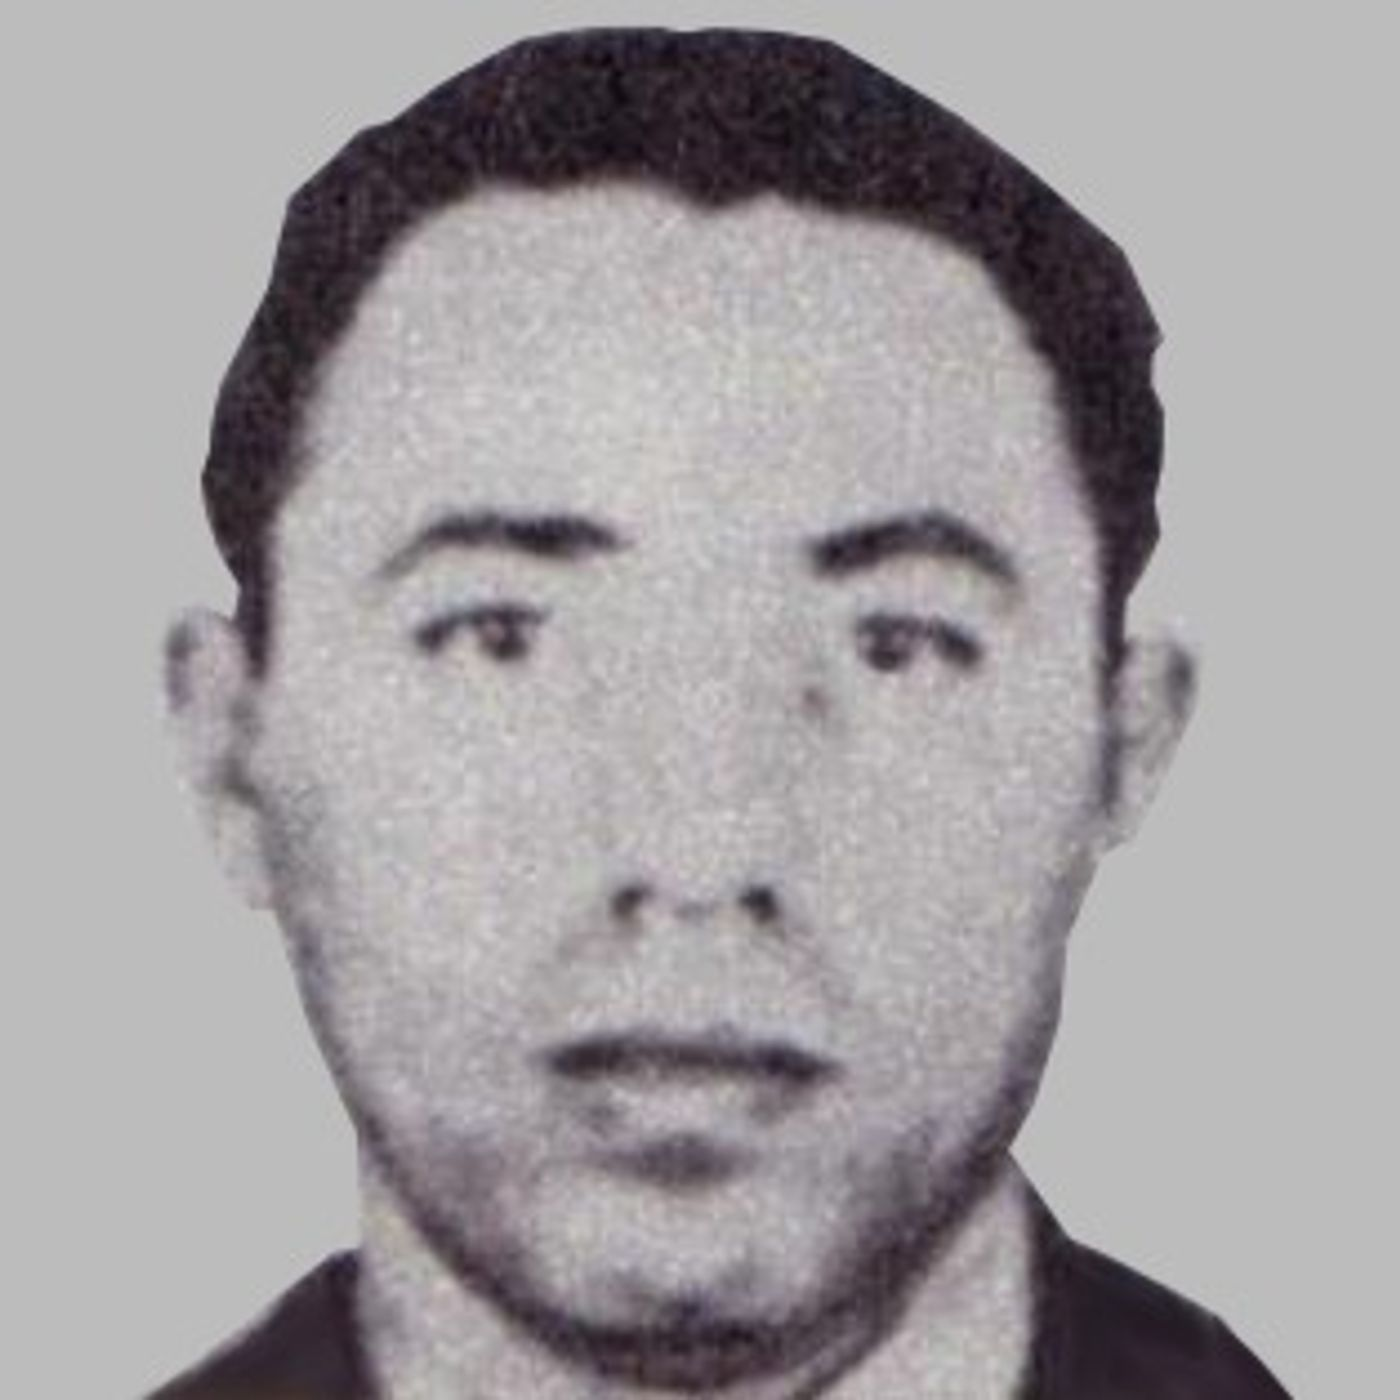 """Gaetano """"Tommy"""" Gagliano - The Original Lucchese Crime Family Boss - Mobster Biography"""